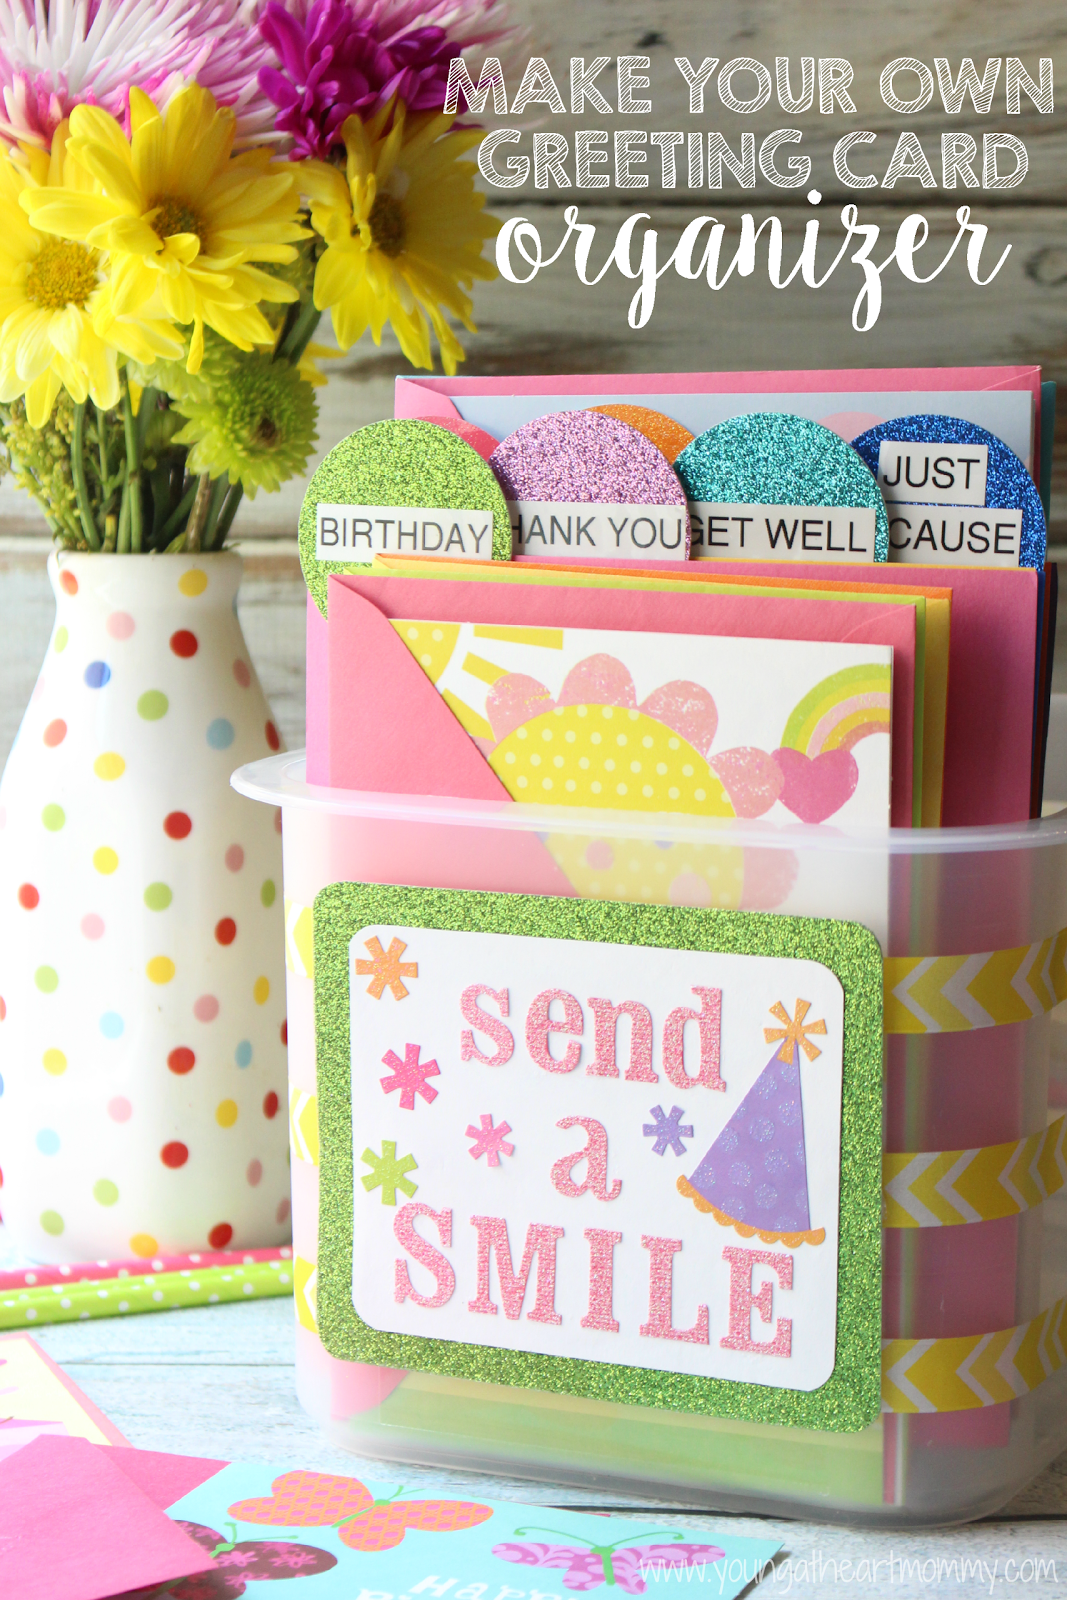 Send a smile with hallmark diy greeting card organizer young at diy greeting card organizer using cardstock paper and a storage bin m4hsunfo